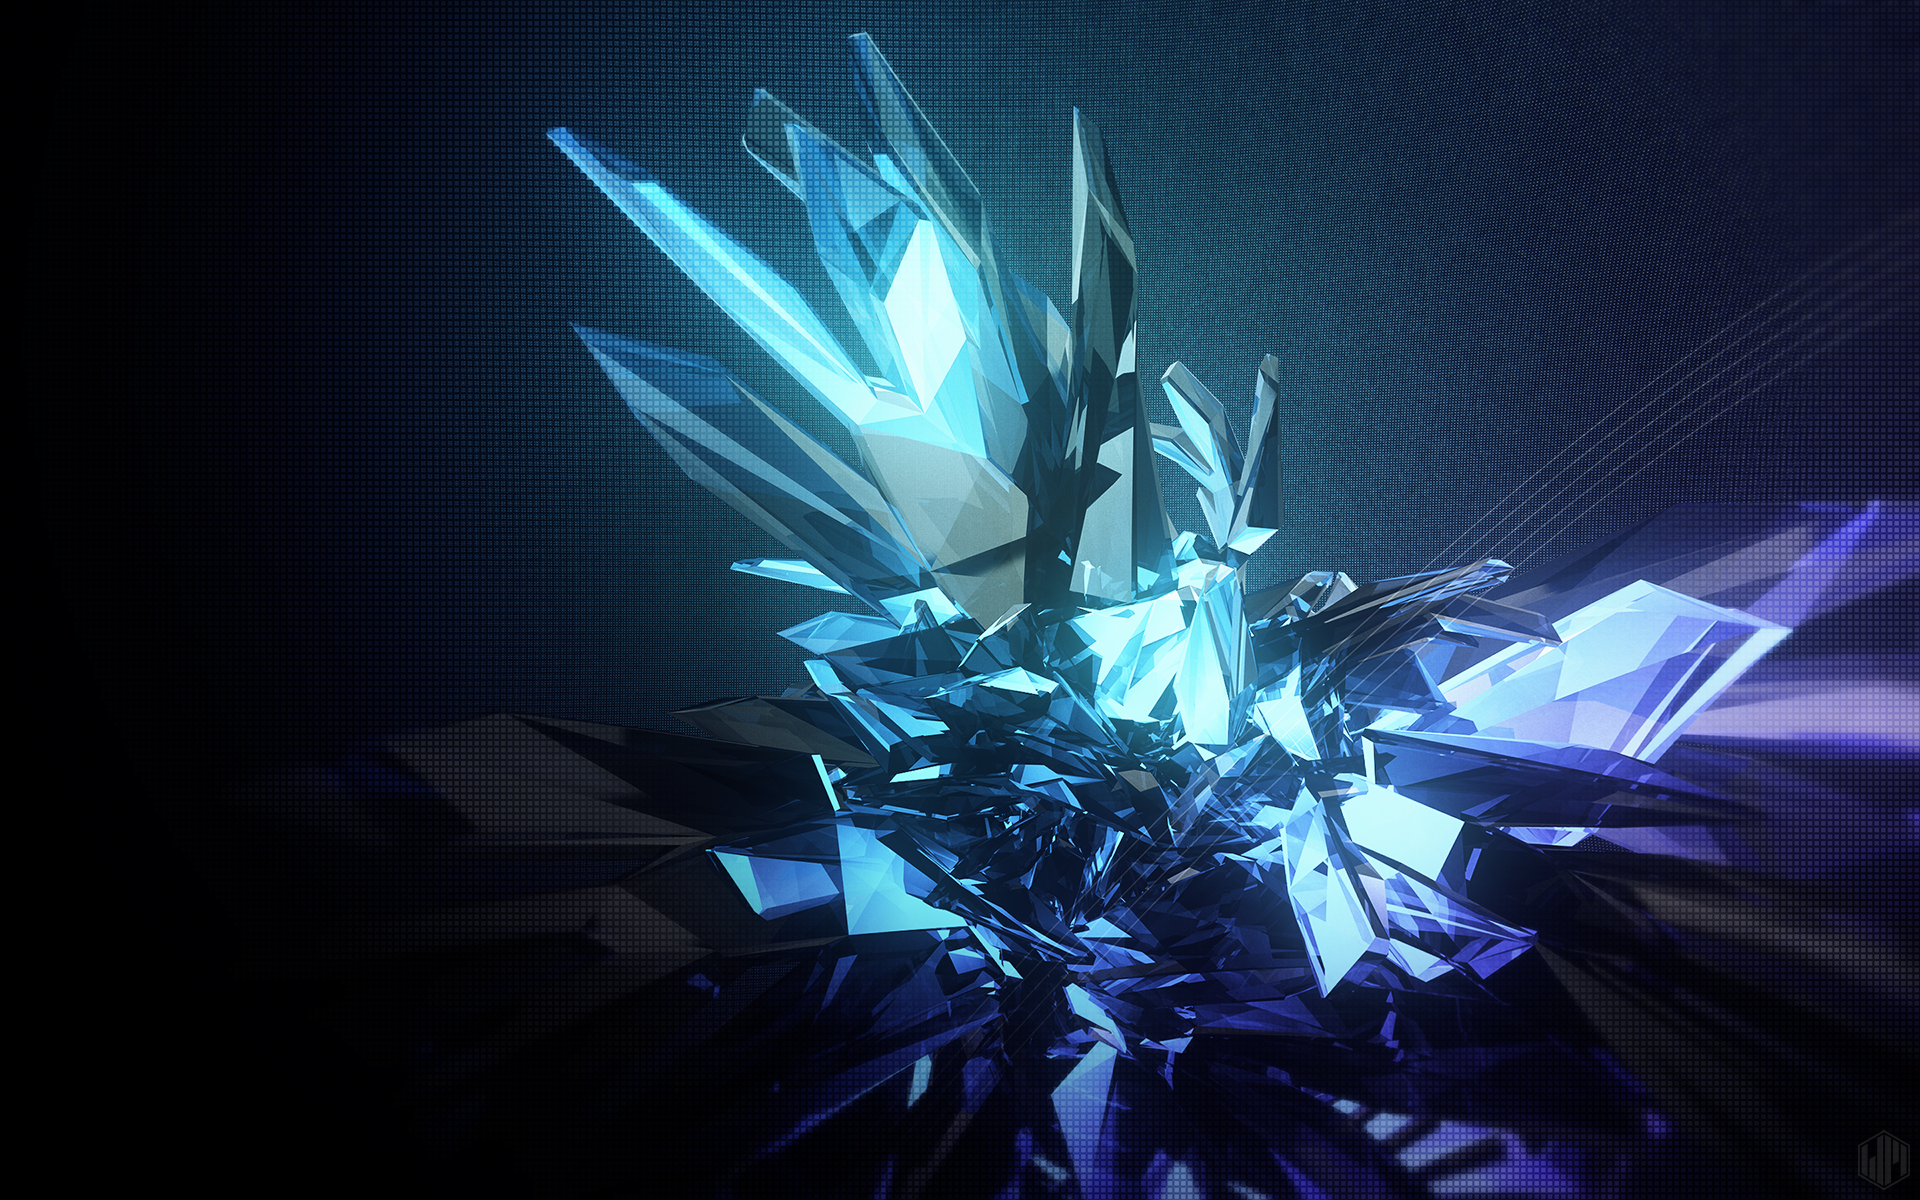 Ice Crystal Crystals Planets Wallpaper Widescreen Wallpaper